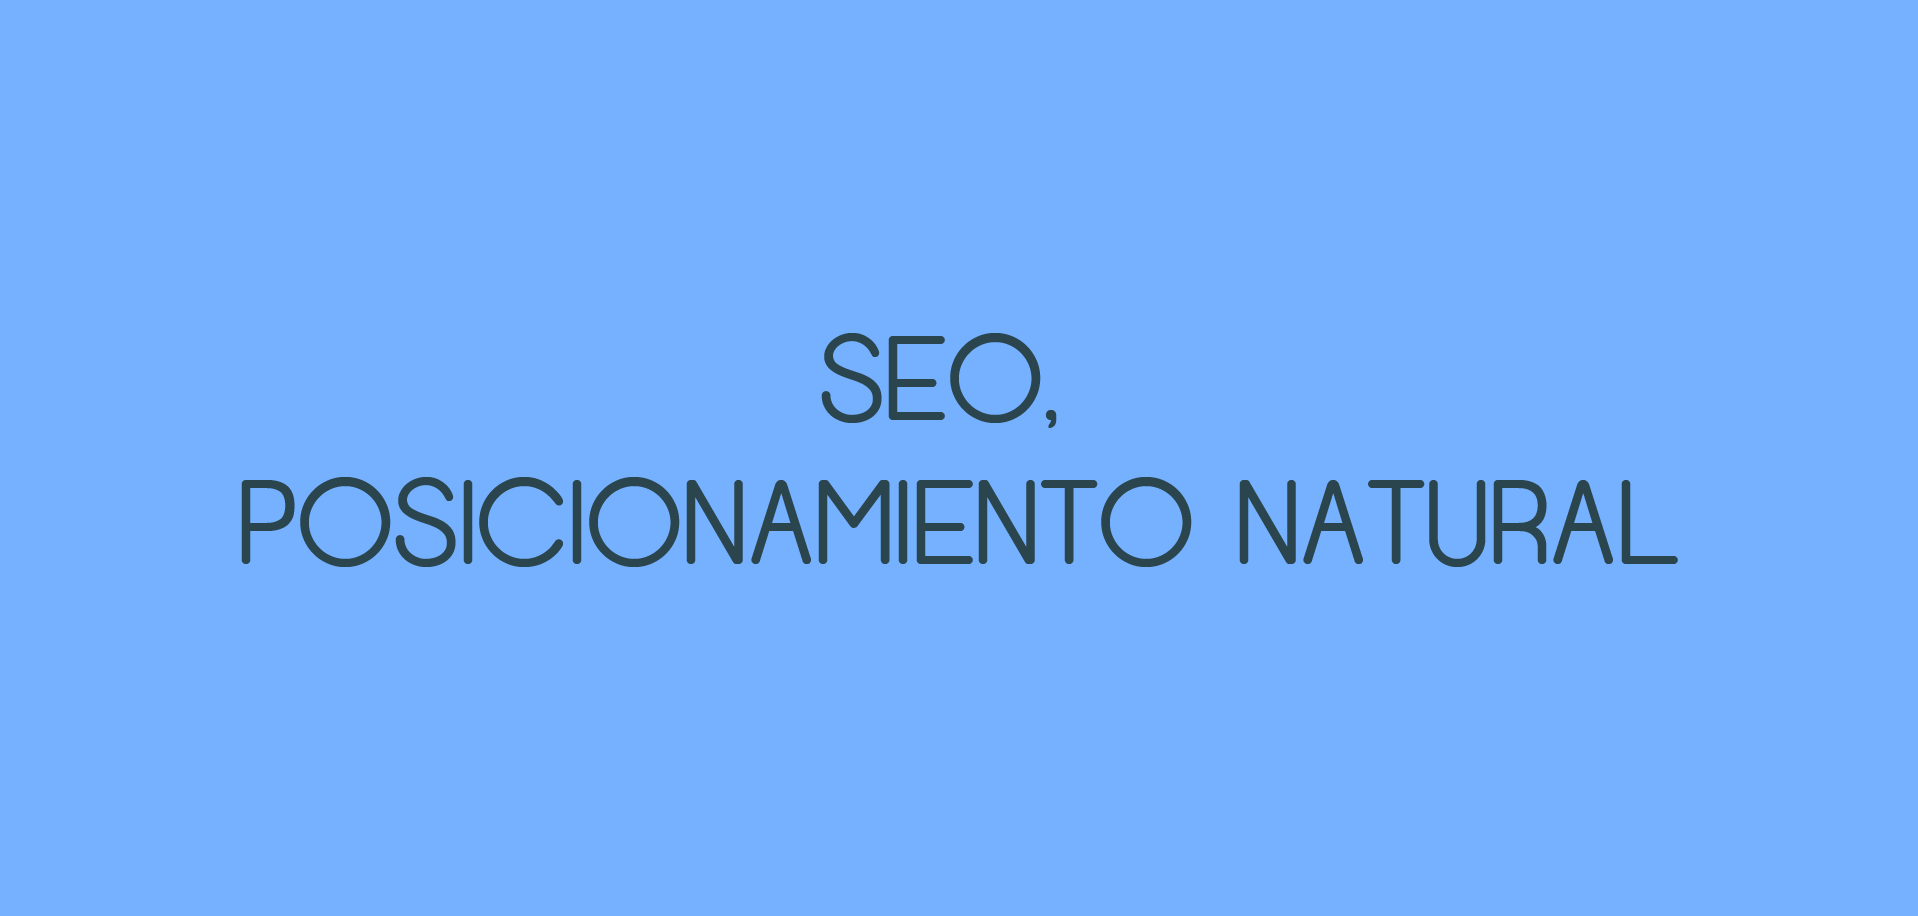 Seo, posicionamiento natural. Tendencias Marketing online 2017